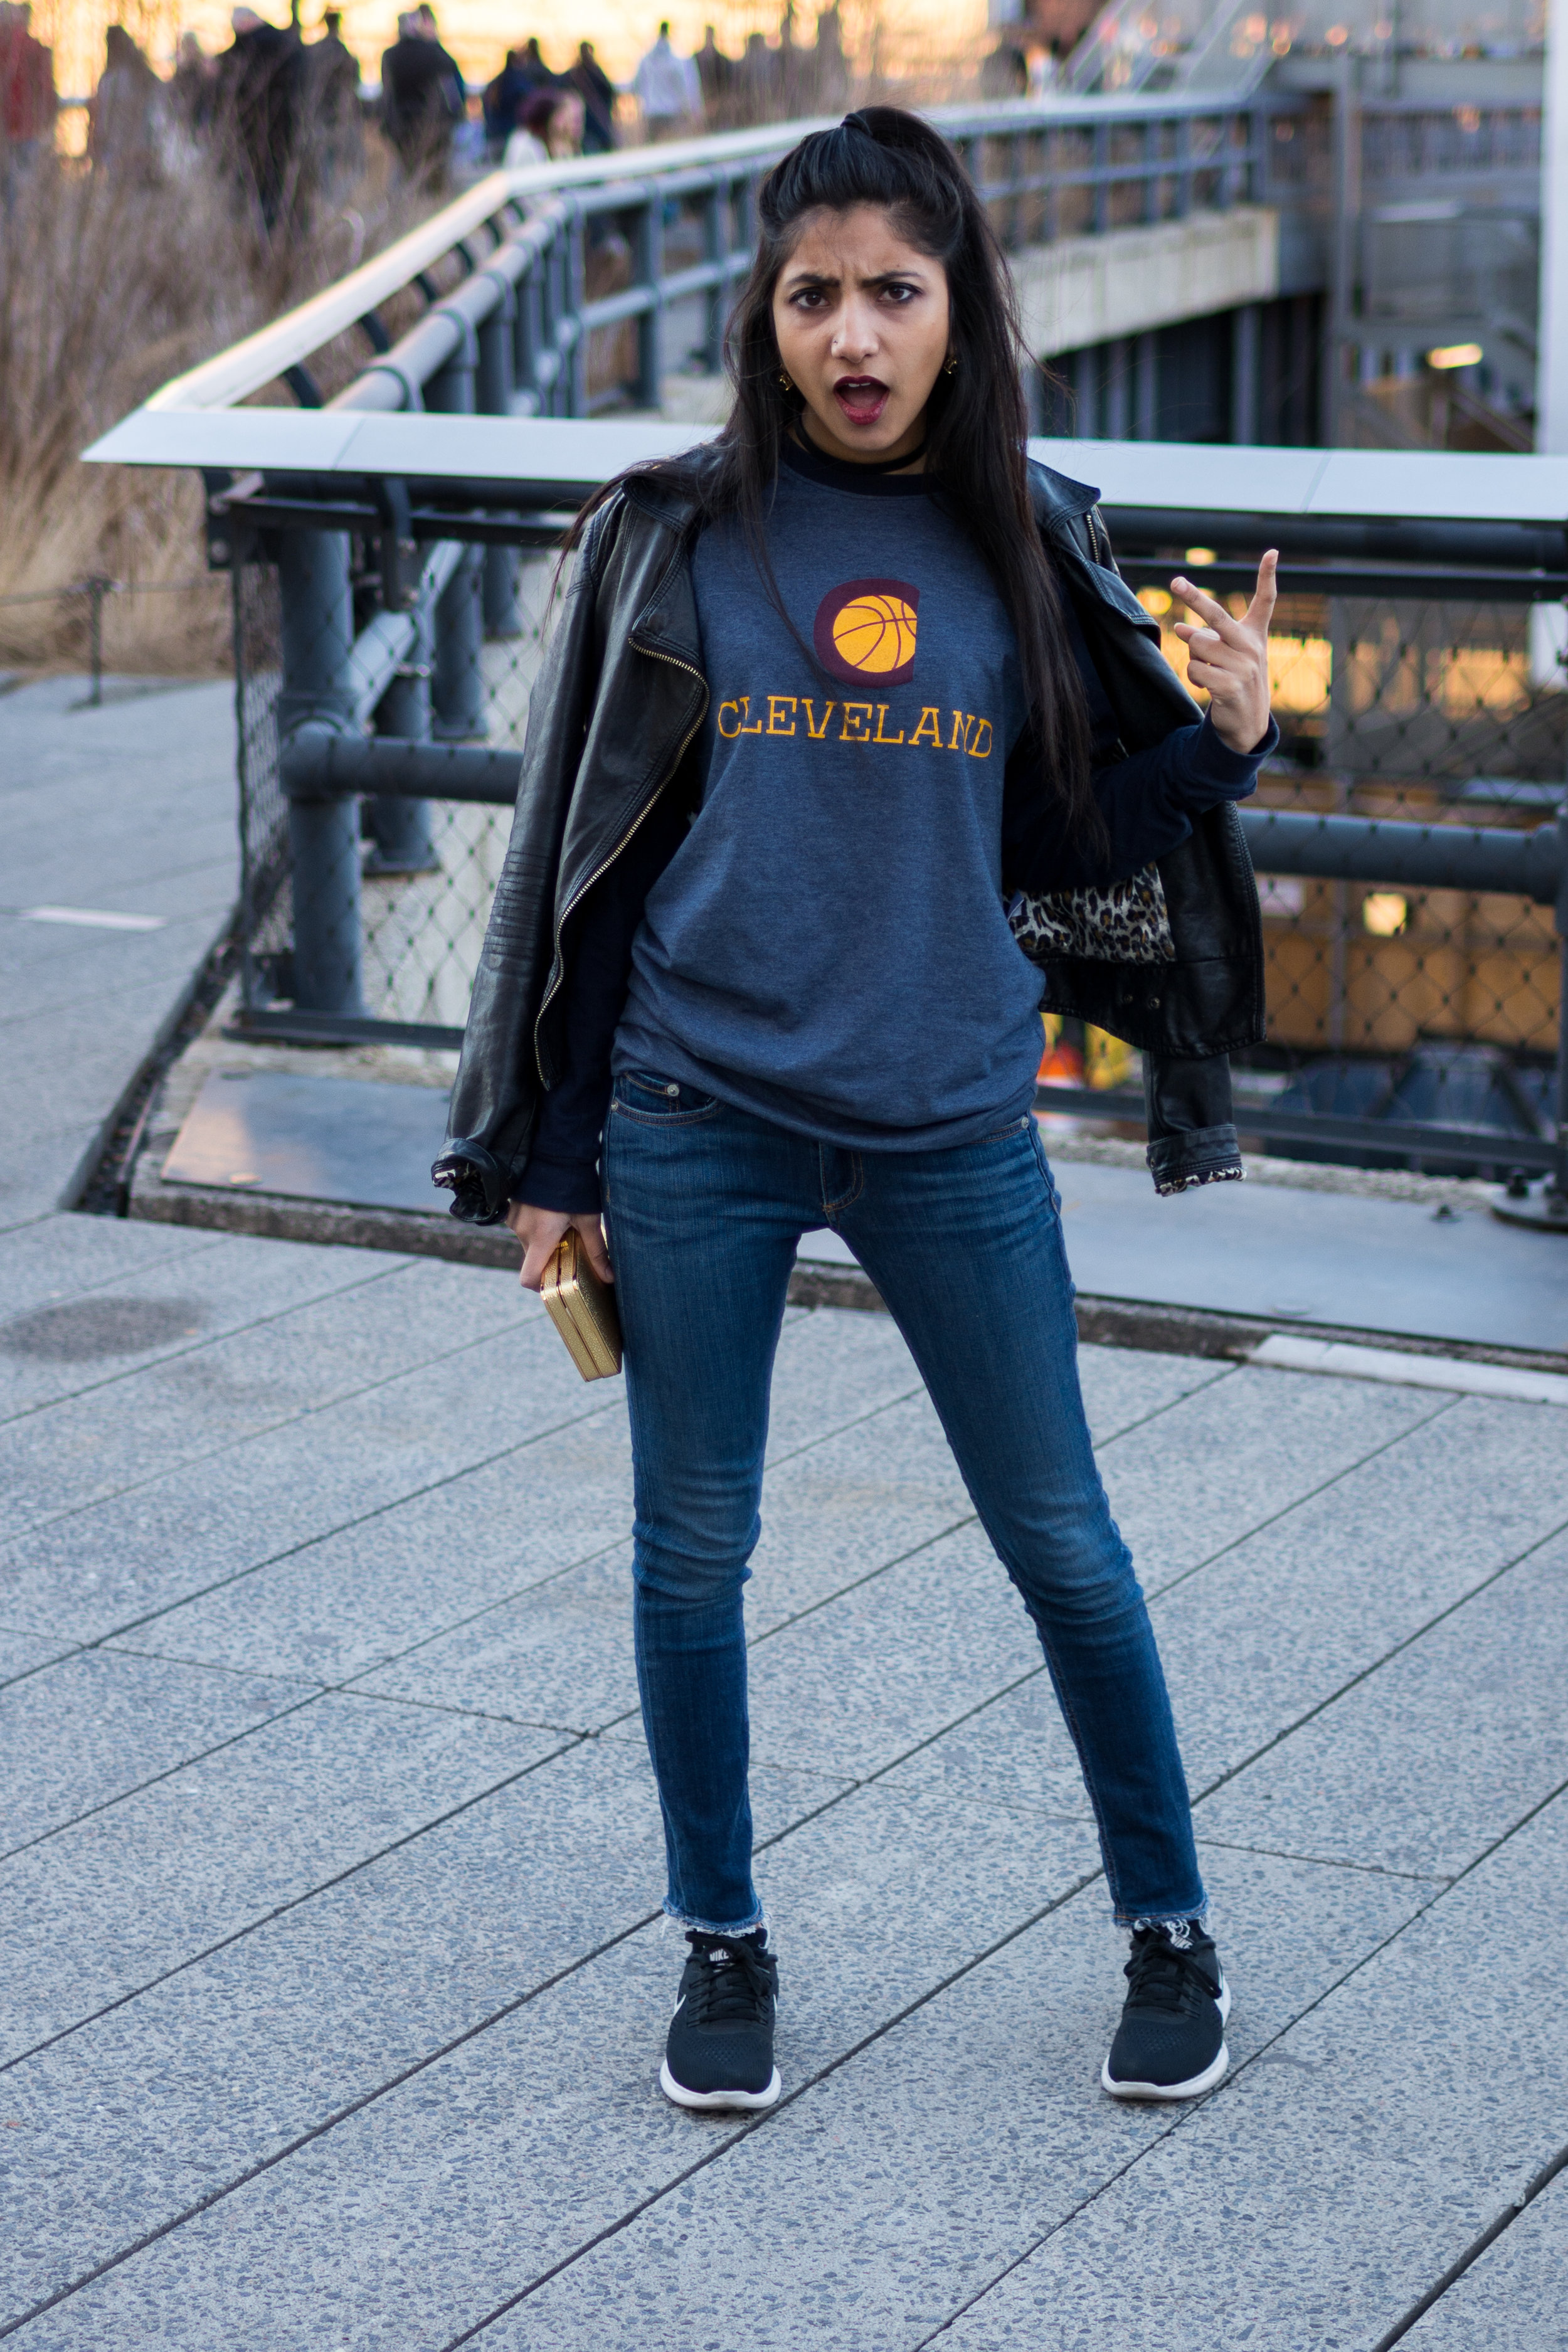 fashionblogger.nyc.ohio.ohioblogger.cleveland.cavs.clevelandcavaliers.fan.fashion..outfit